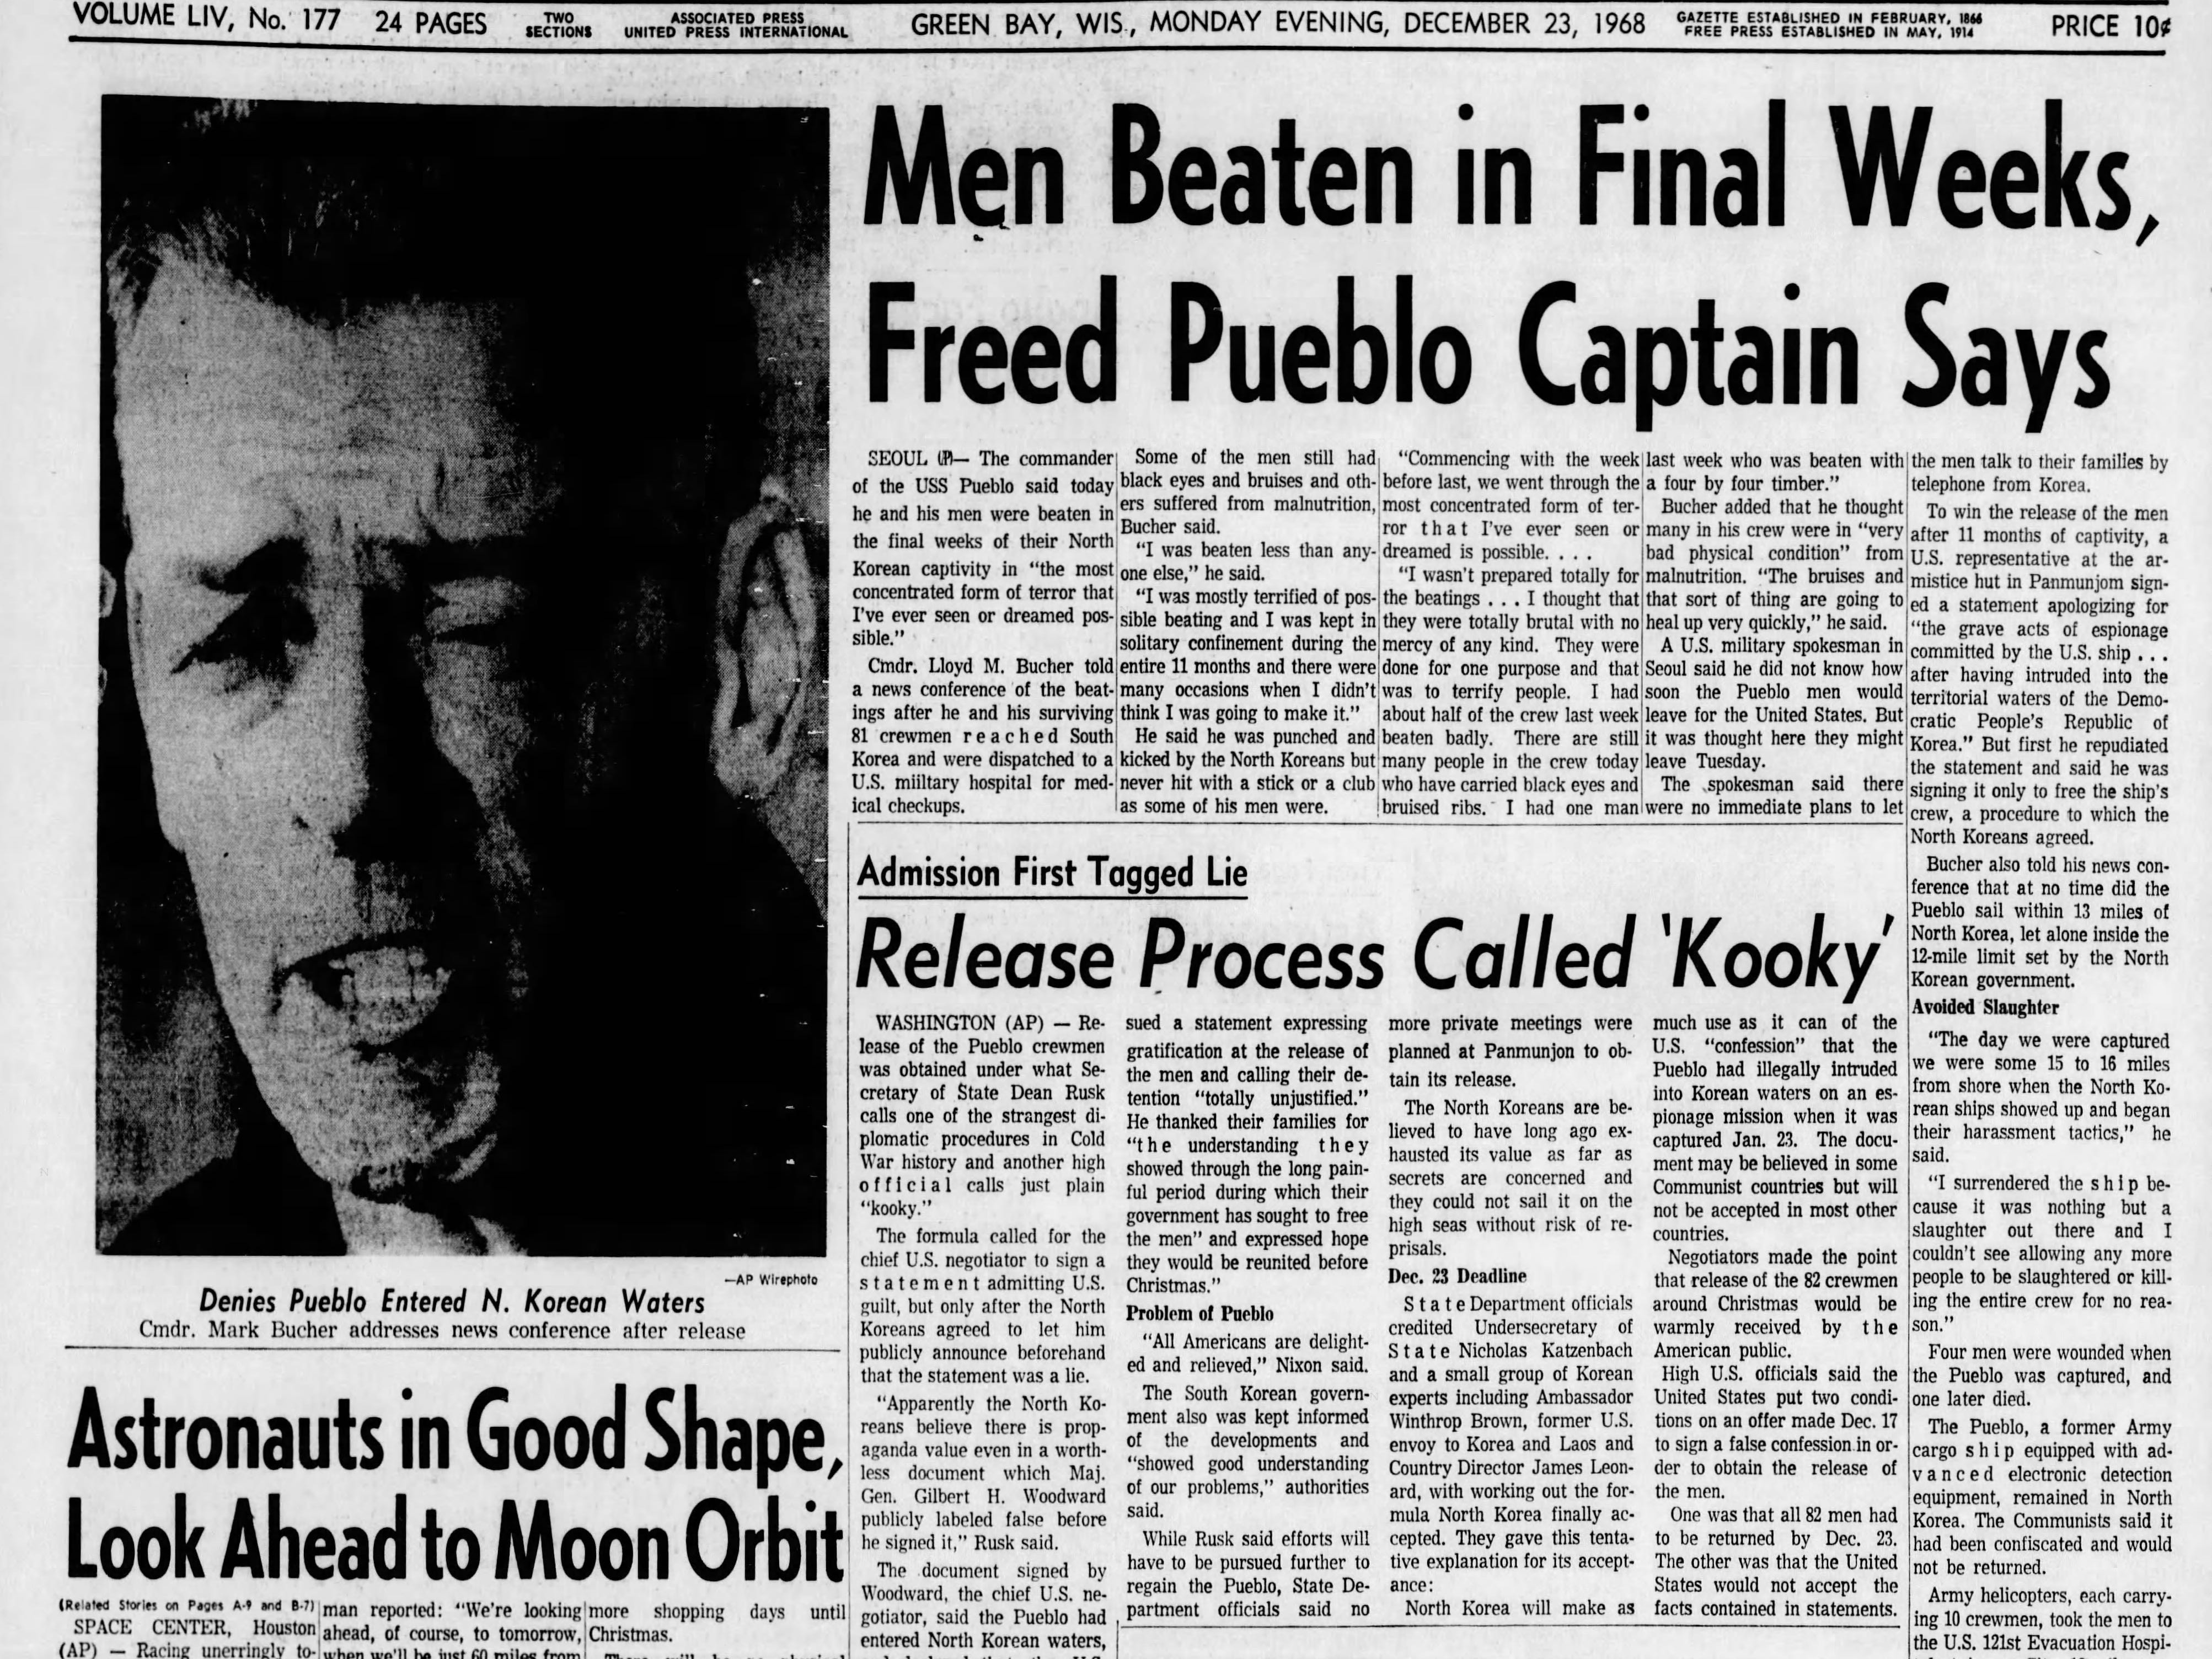 Today in History: Dec. 23, 1968